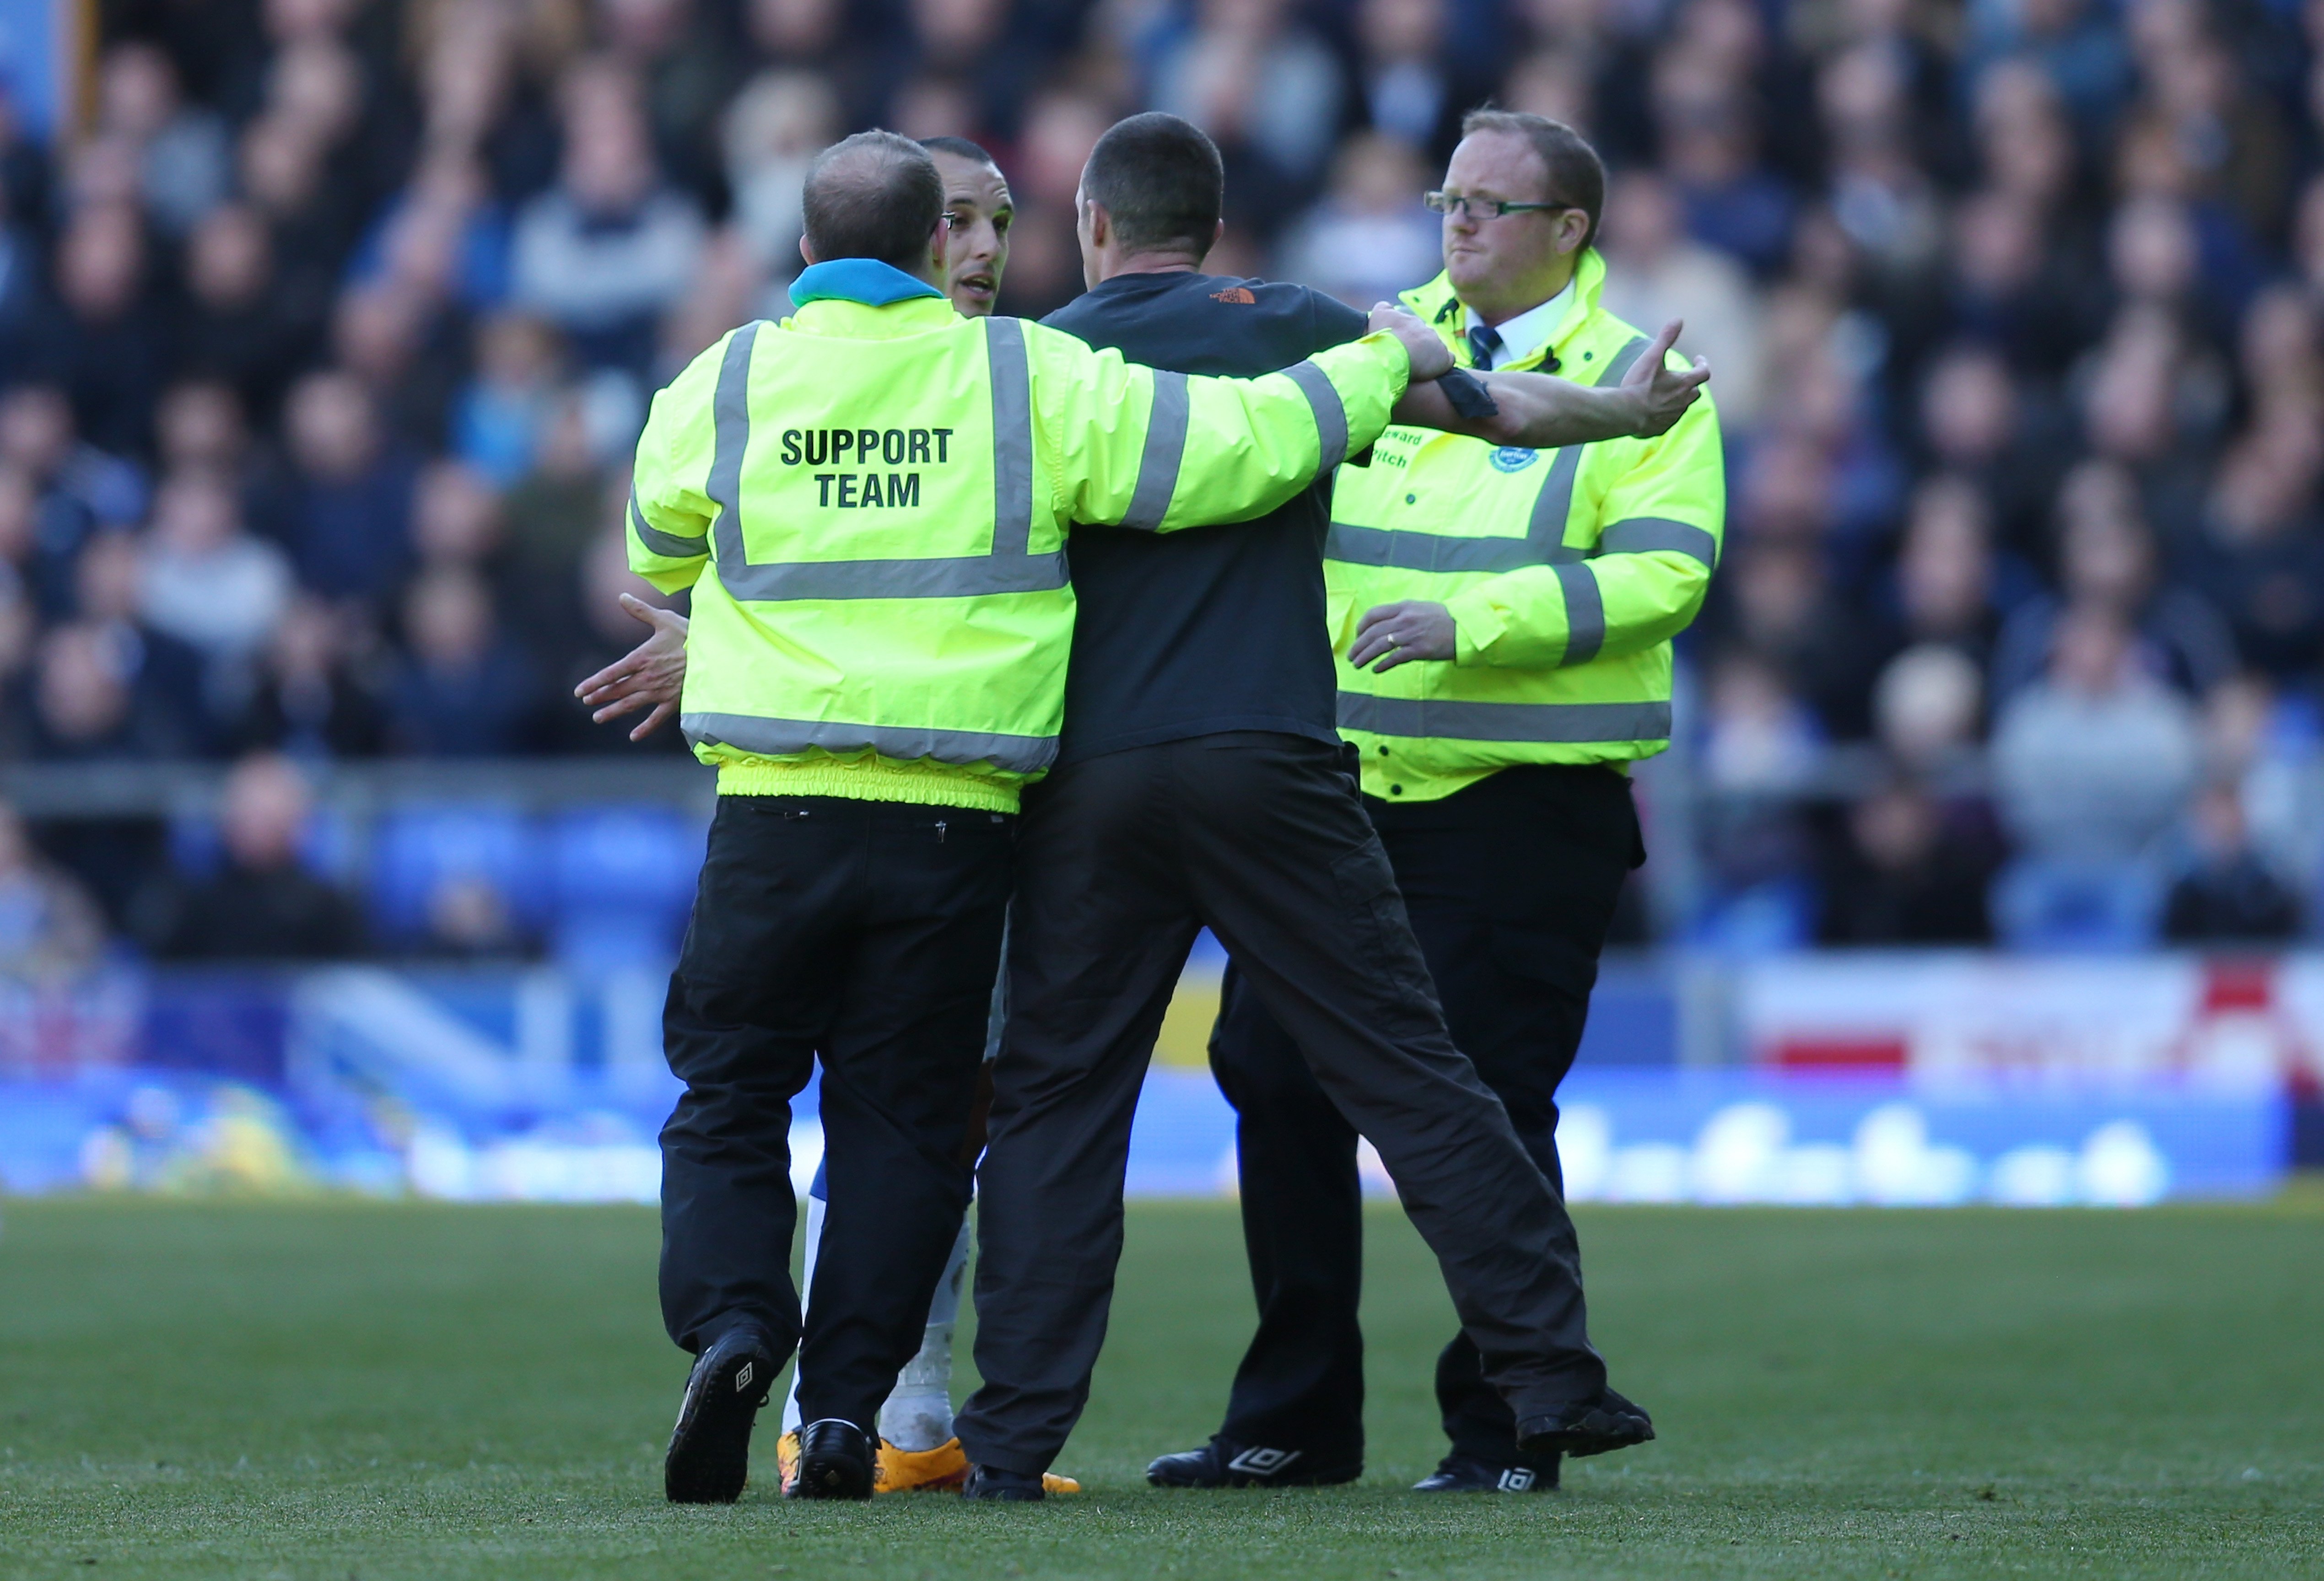 The pitch invader remonstrating with Leon Osman